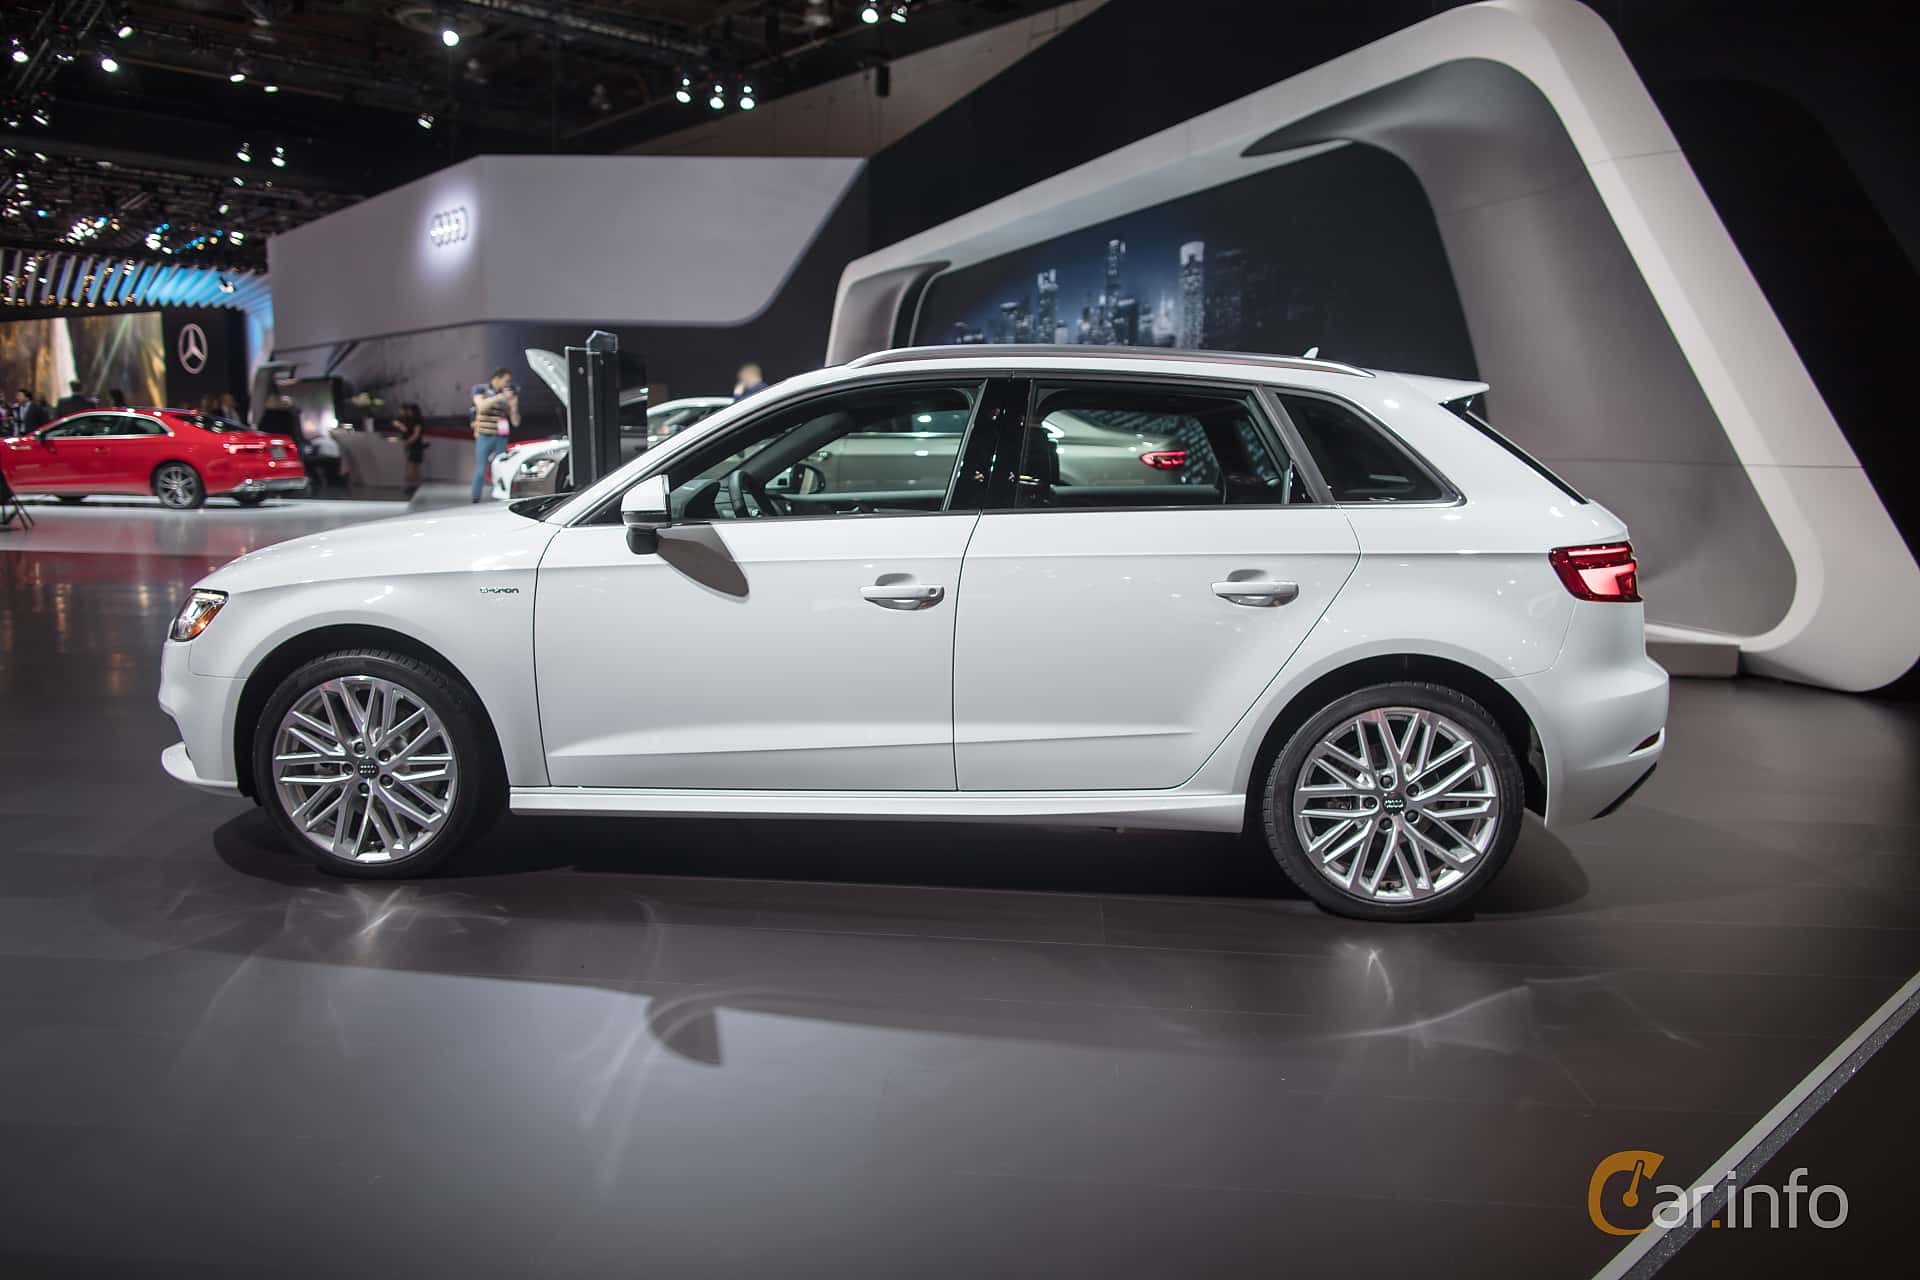 user images of audi a3 sportback 8v facelift. Black Bedroom Furniture Sets. Home Design Ideas